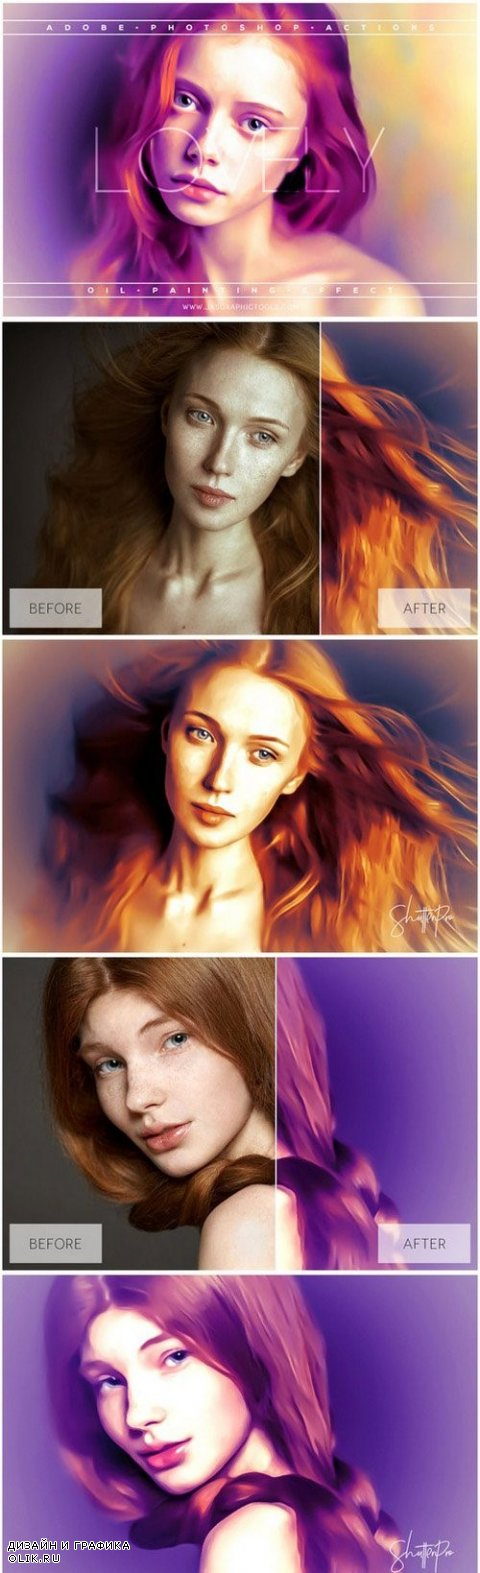 Lovely Oil Painting Effect Actions - 884892